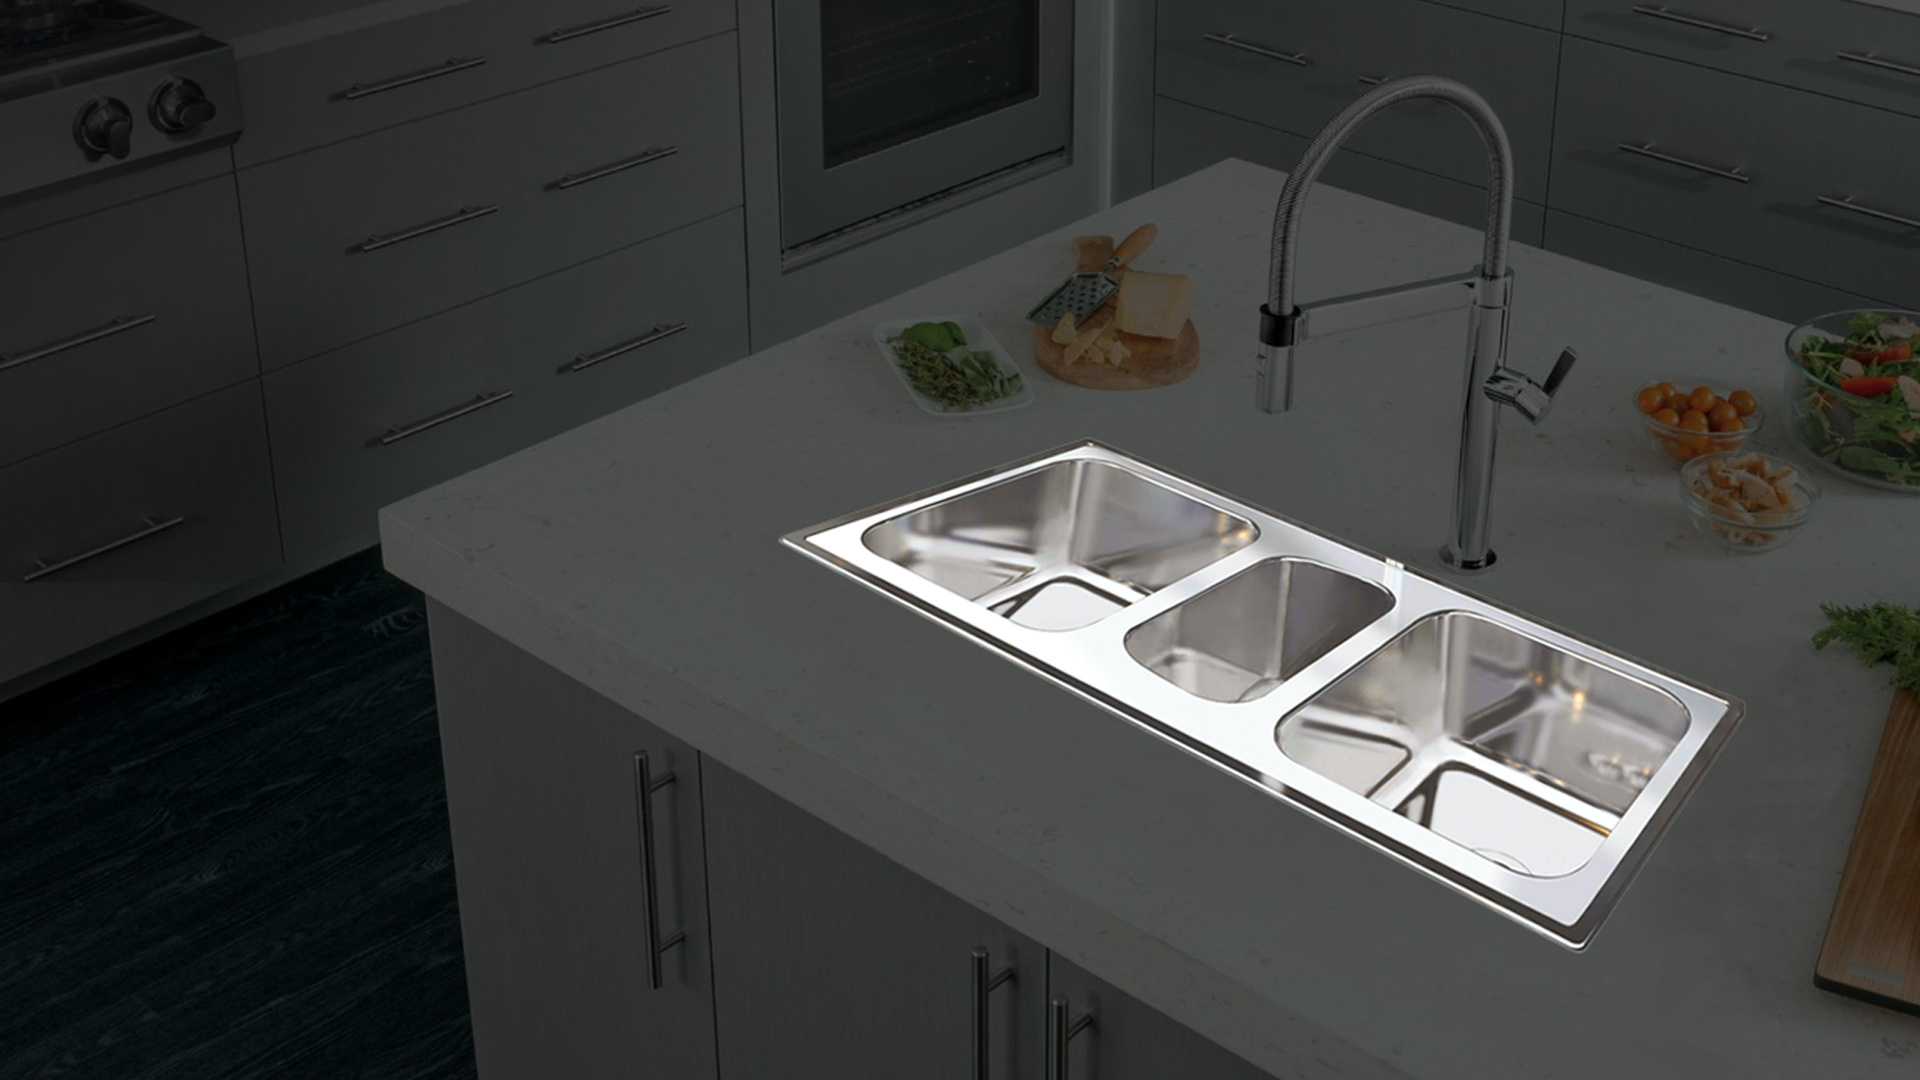 Home Rosevit Kitchen Sink